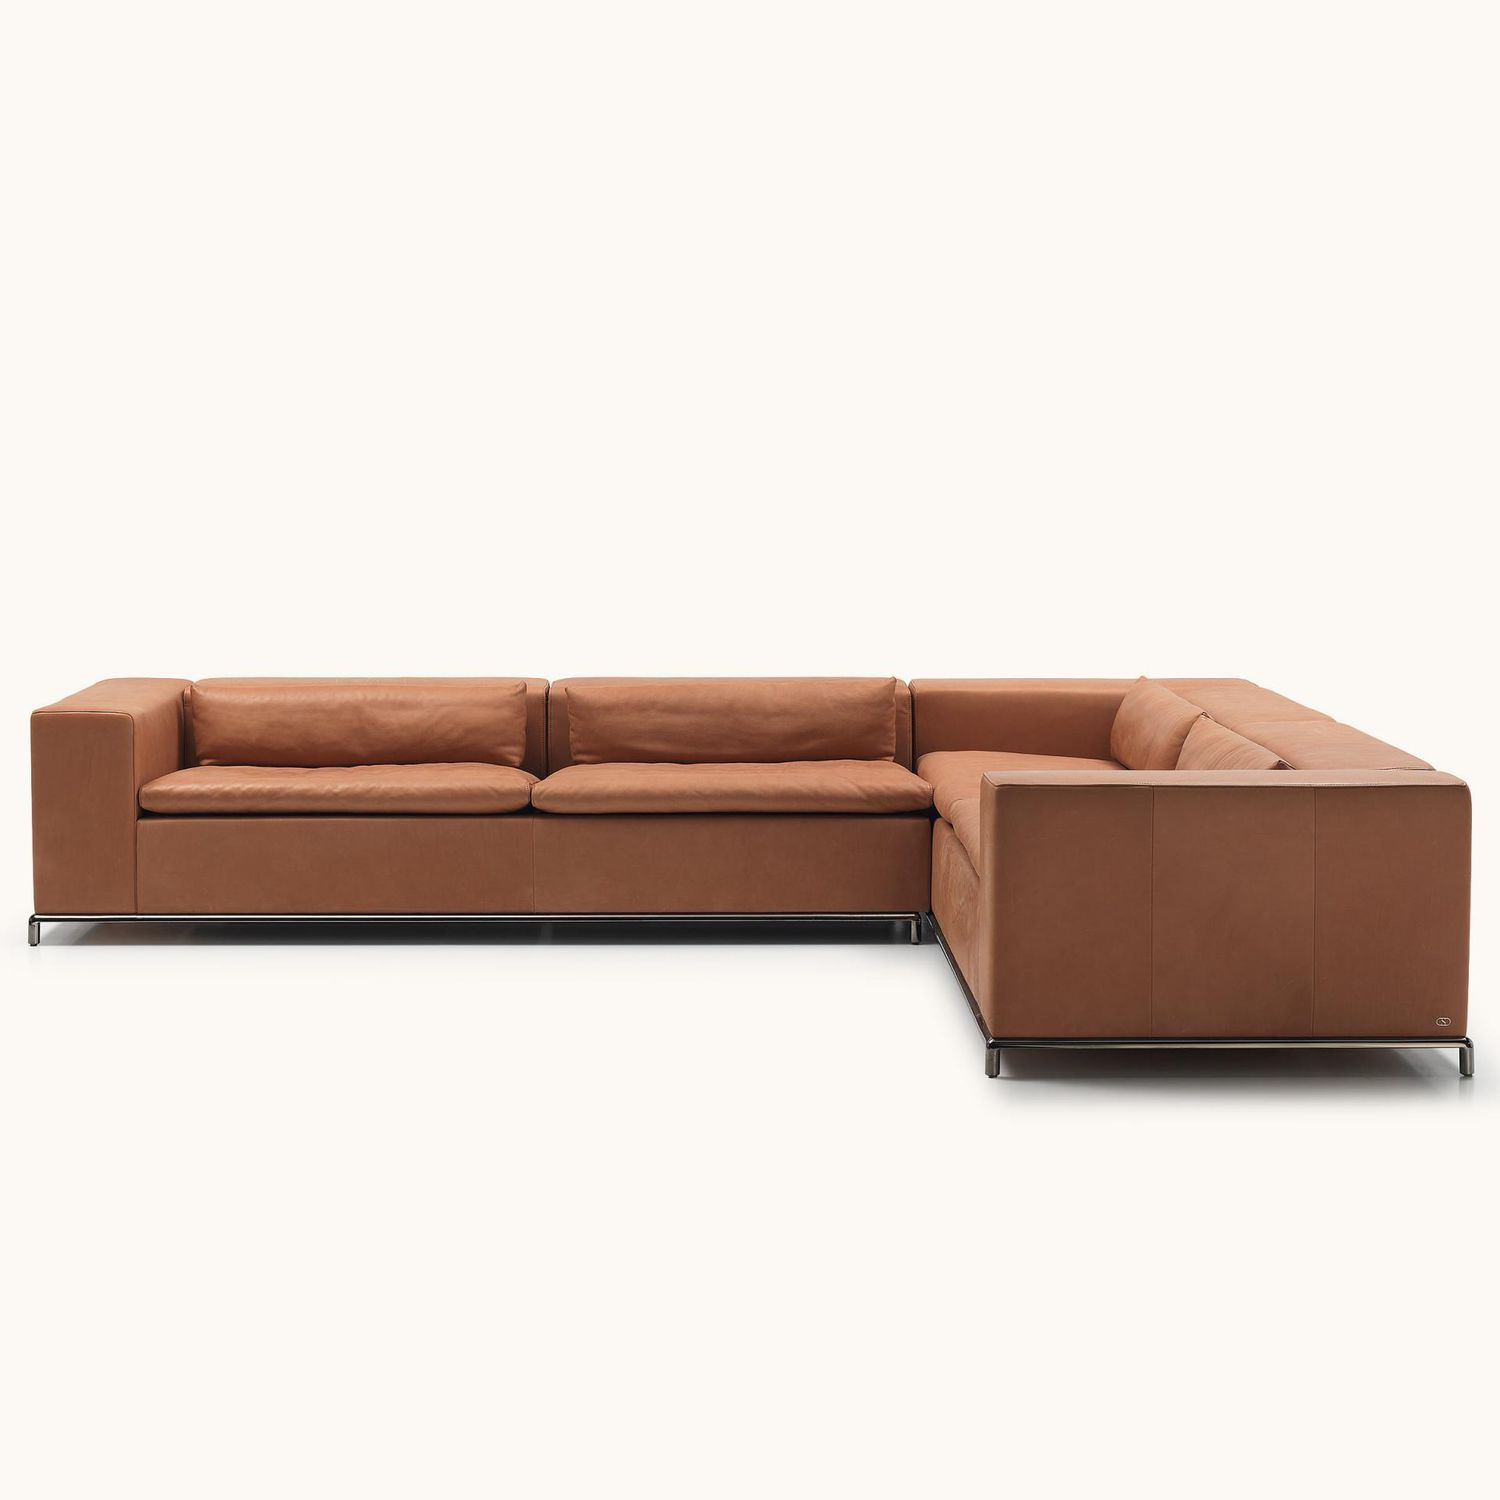 Modular Sofa Gumtree Perth Leather Sofa Corner Lounge